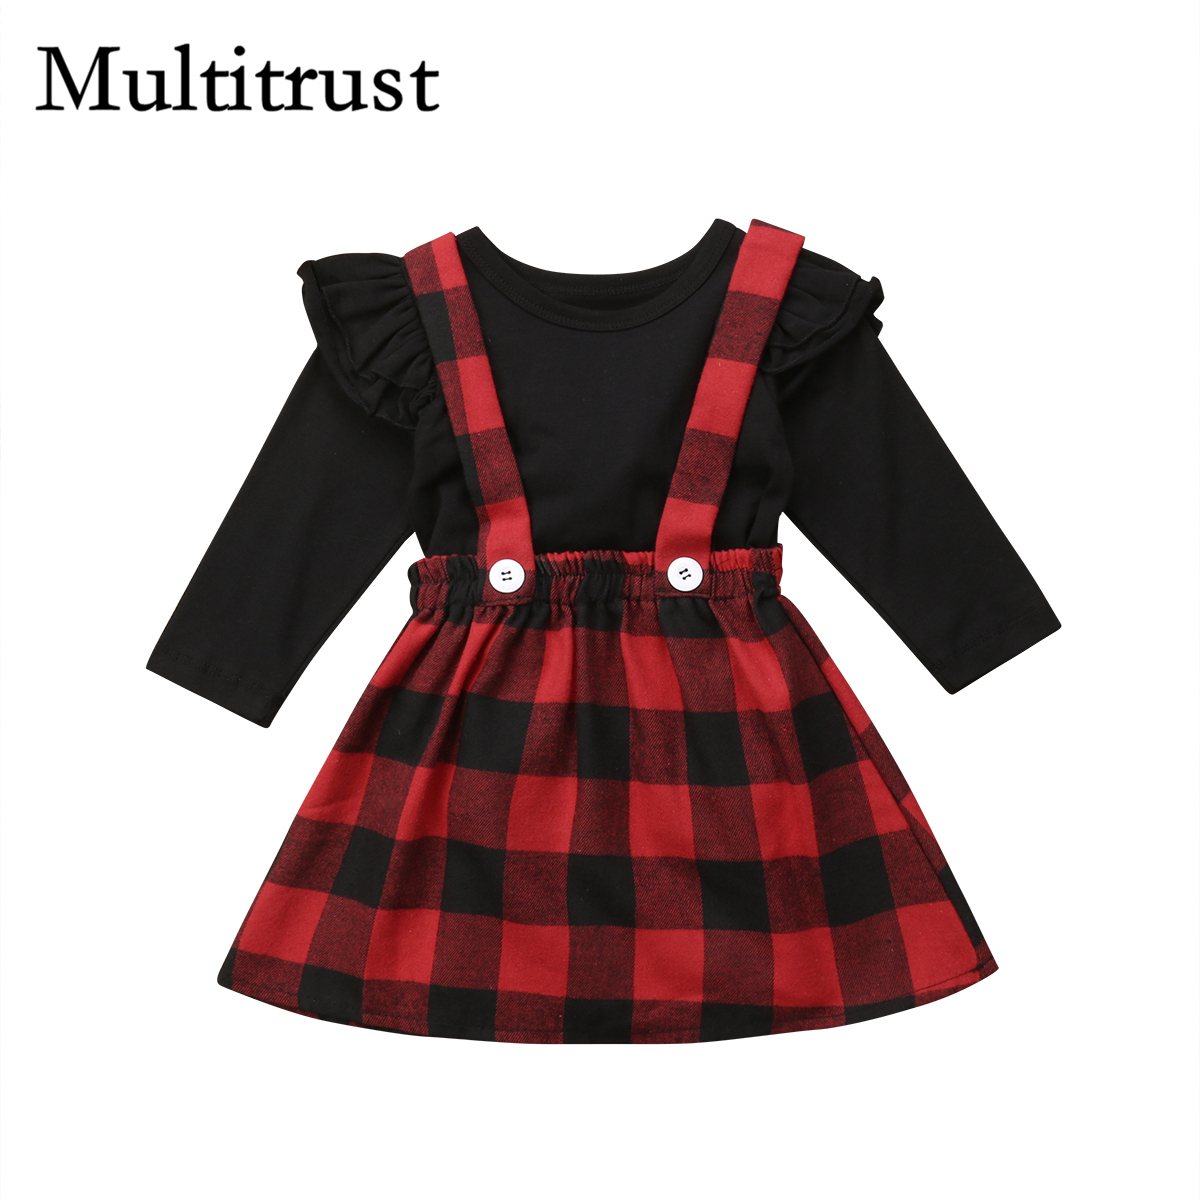 2018 Multitrust Brand Christmas Baby Girls Clothes Outfits Black Winter T-shirt+Overall strap Red Plaid Skirt Autumn Set